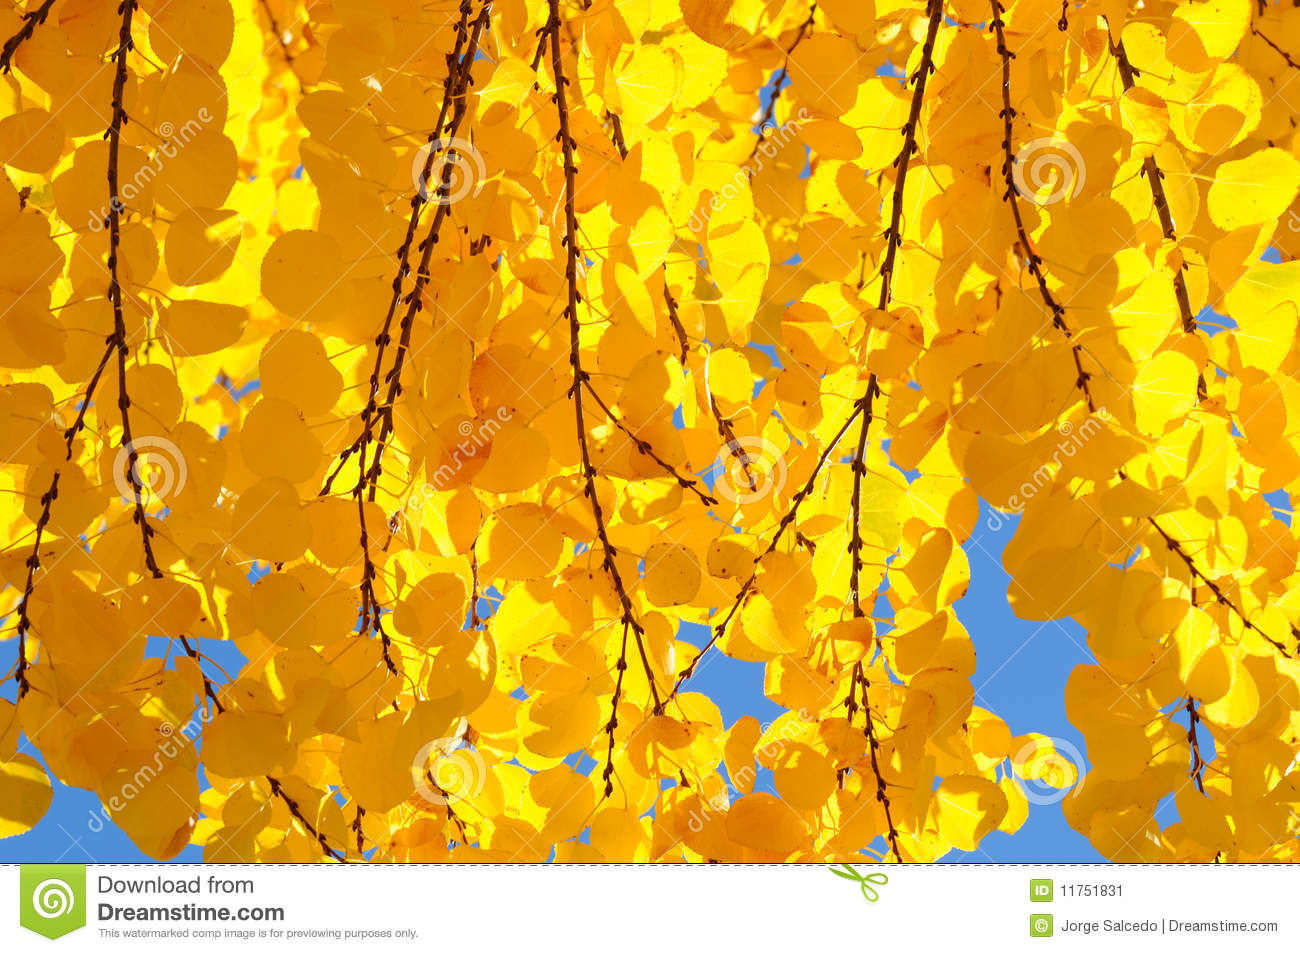 Abstract Fall Colors Wallpaper Bright Yellow Leaves Of The Katsura Tree Stock Image